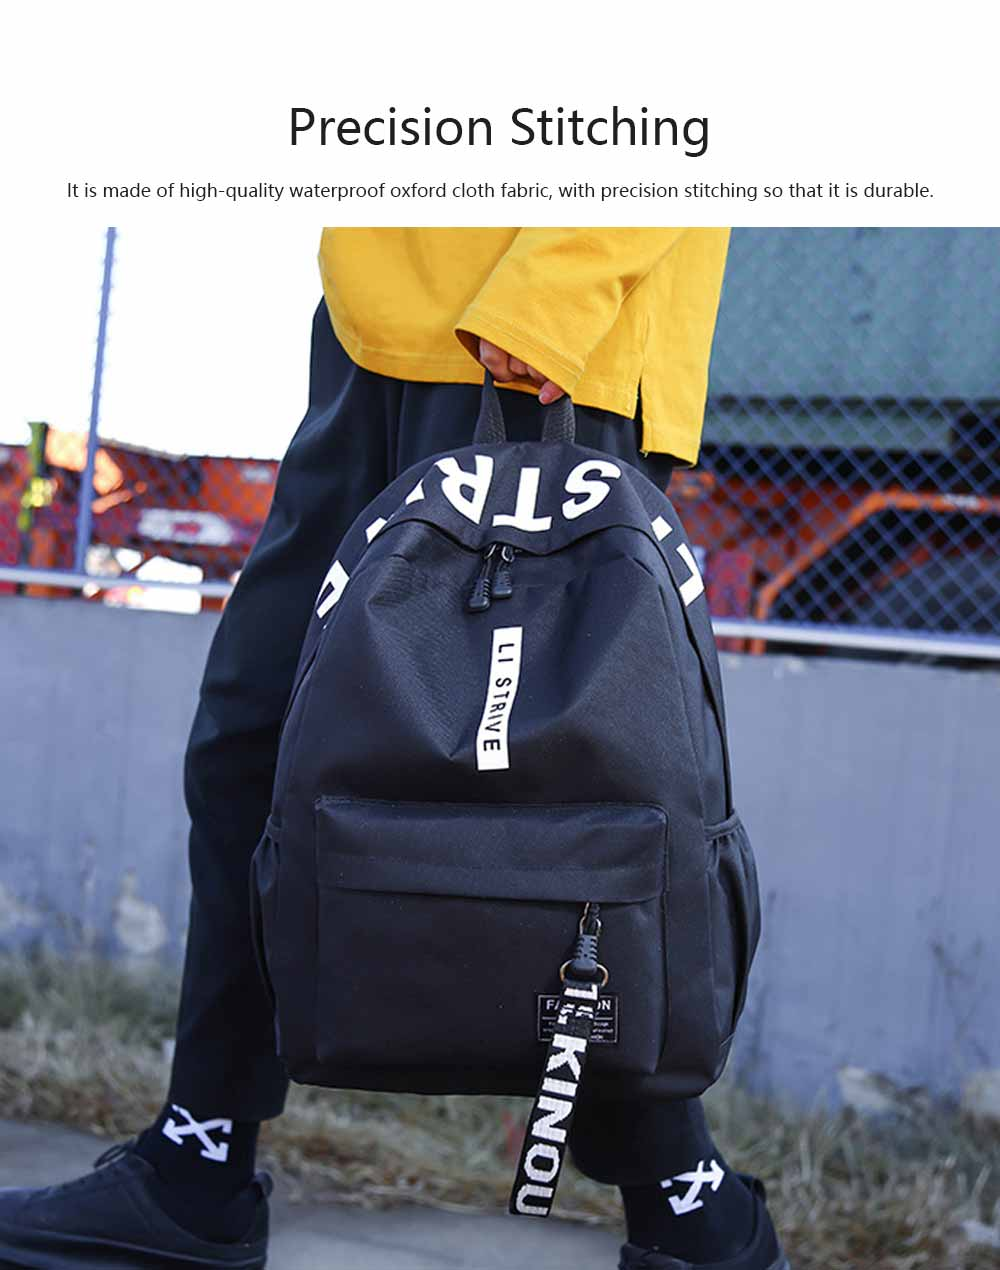 Preppy Style School Bag for Students Fashion Printing Smooth Zipper Adjustable Shoulder Strap Side Pockets Ribbon Backpack 3